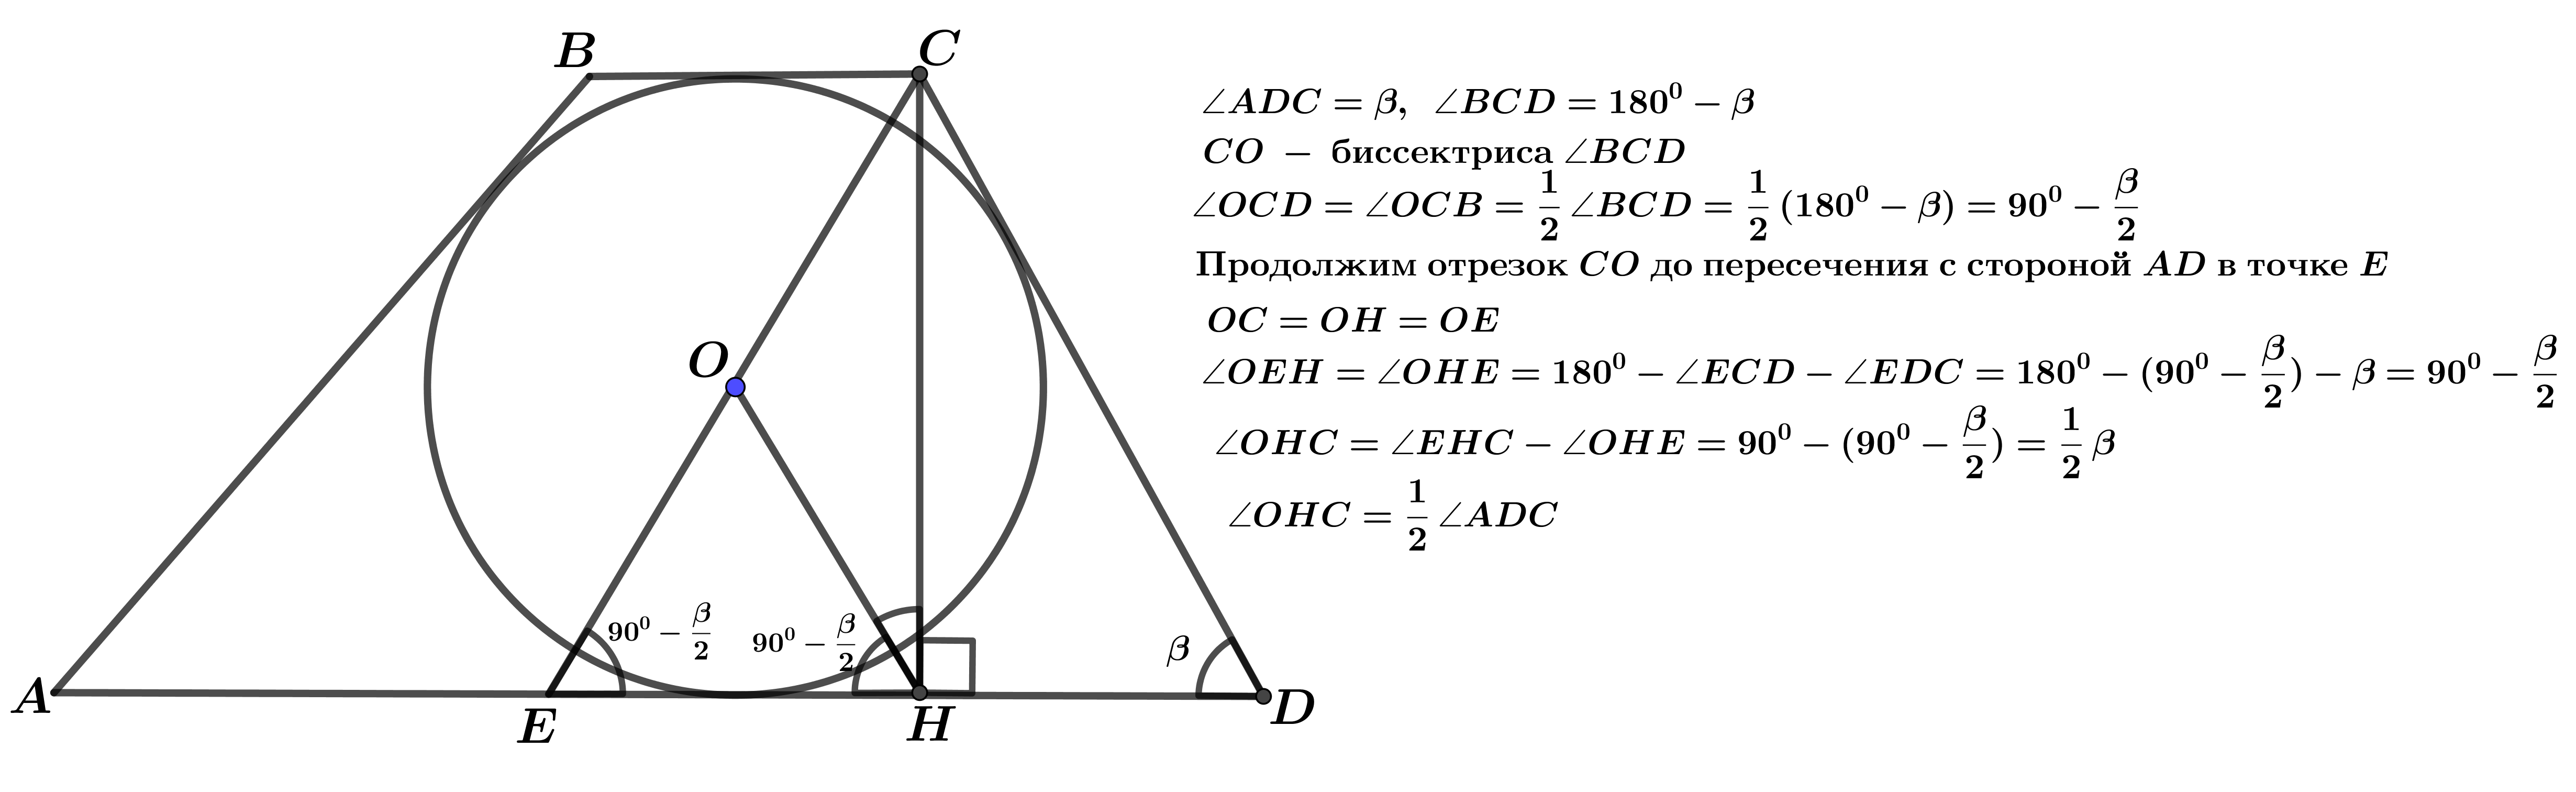 Вар. 238_16а (2).png